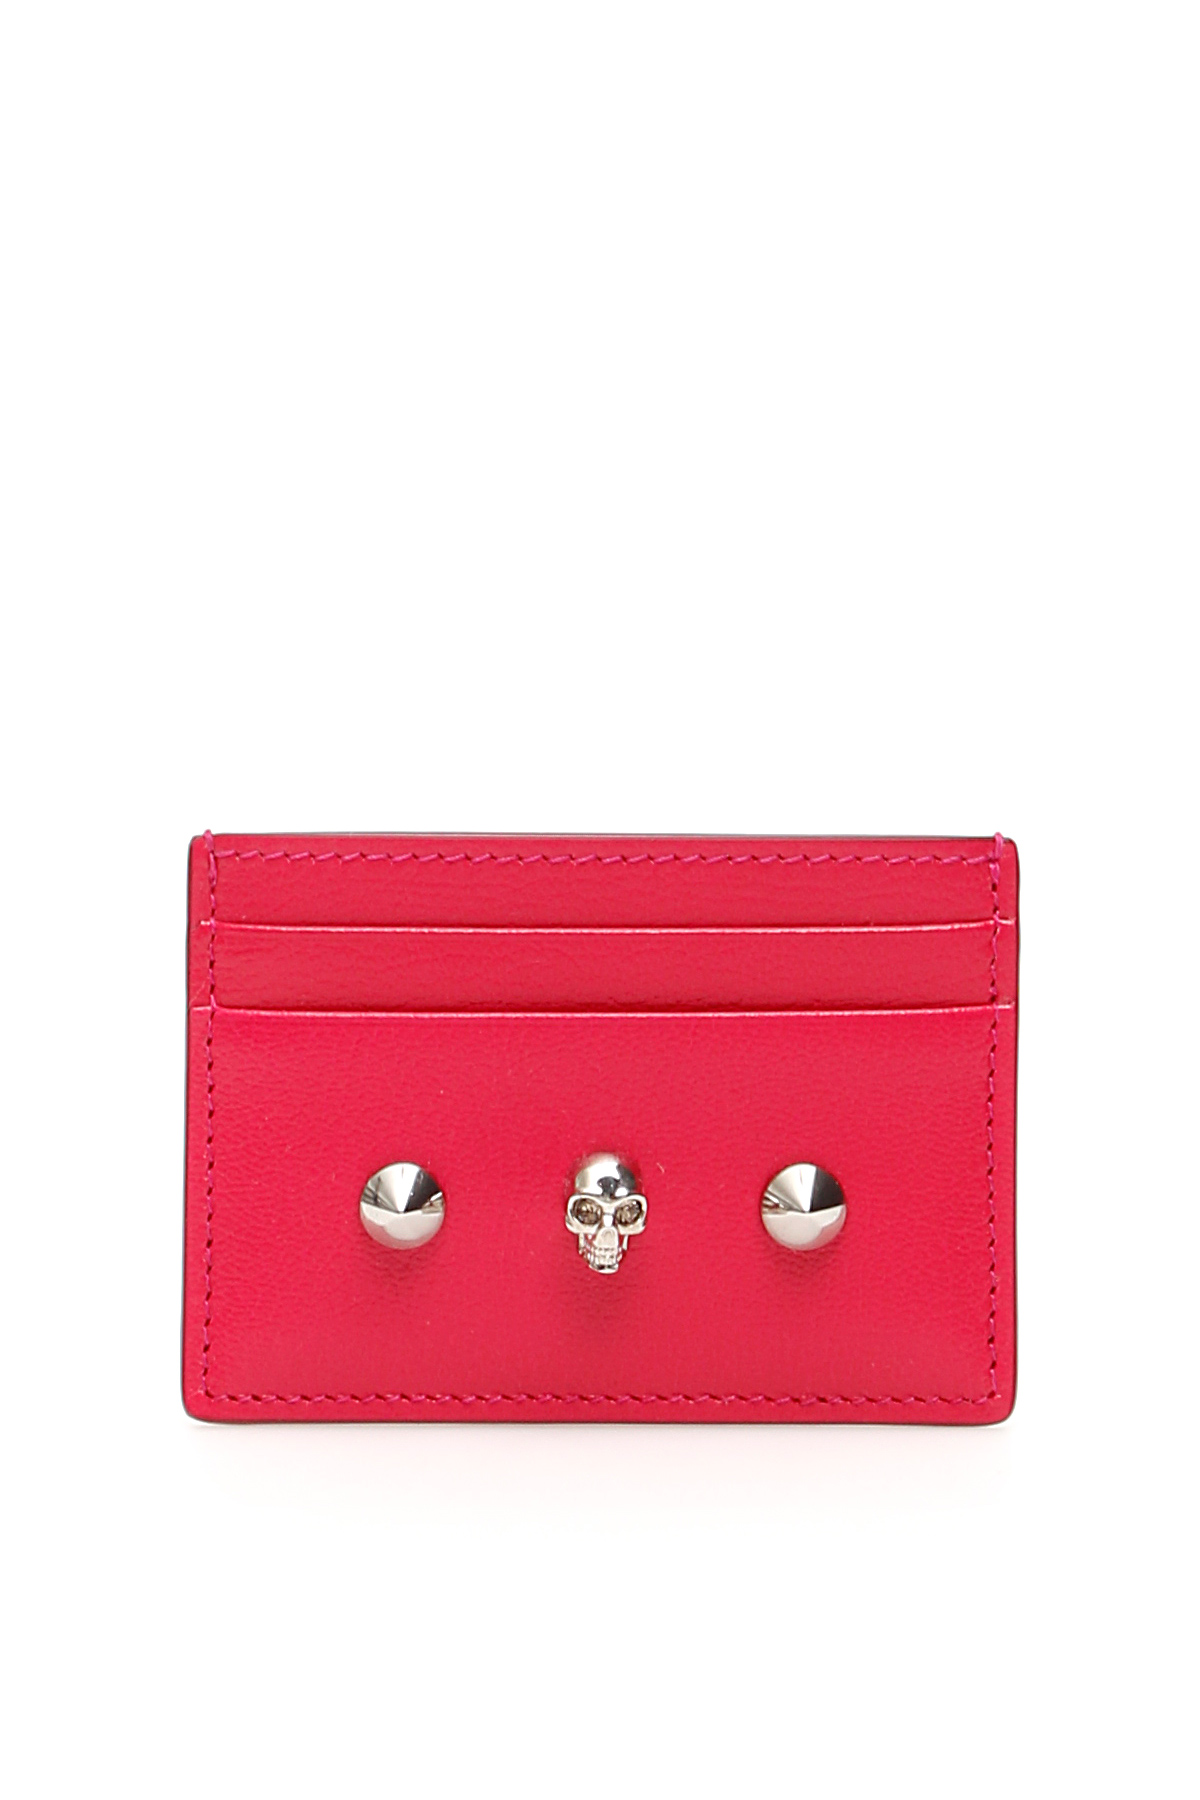 ALEXANDER MCQUEEN SKULL CREDIT CARD HOLDER OS Fuchsia, Red Leather